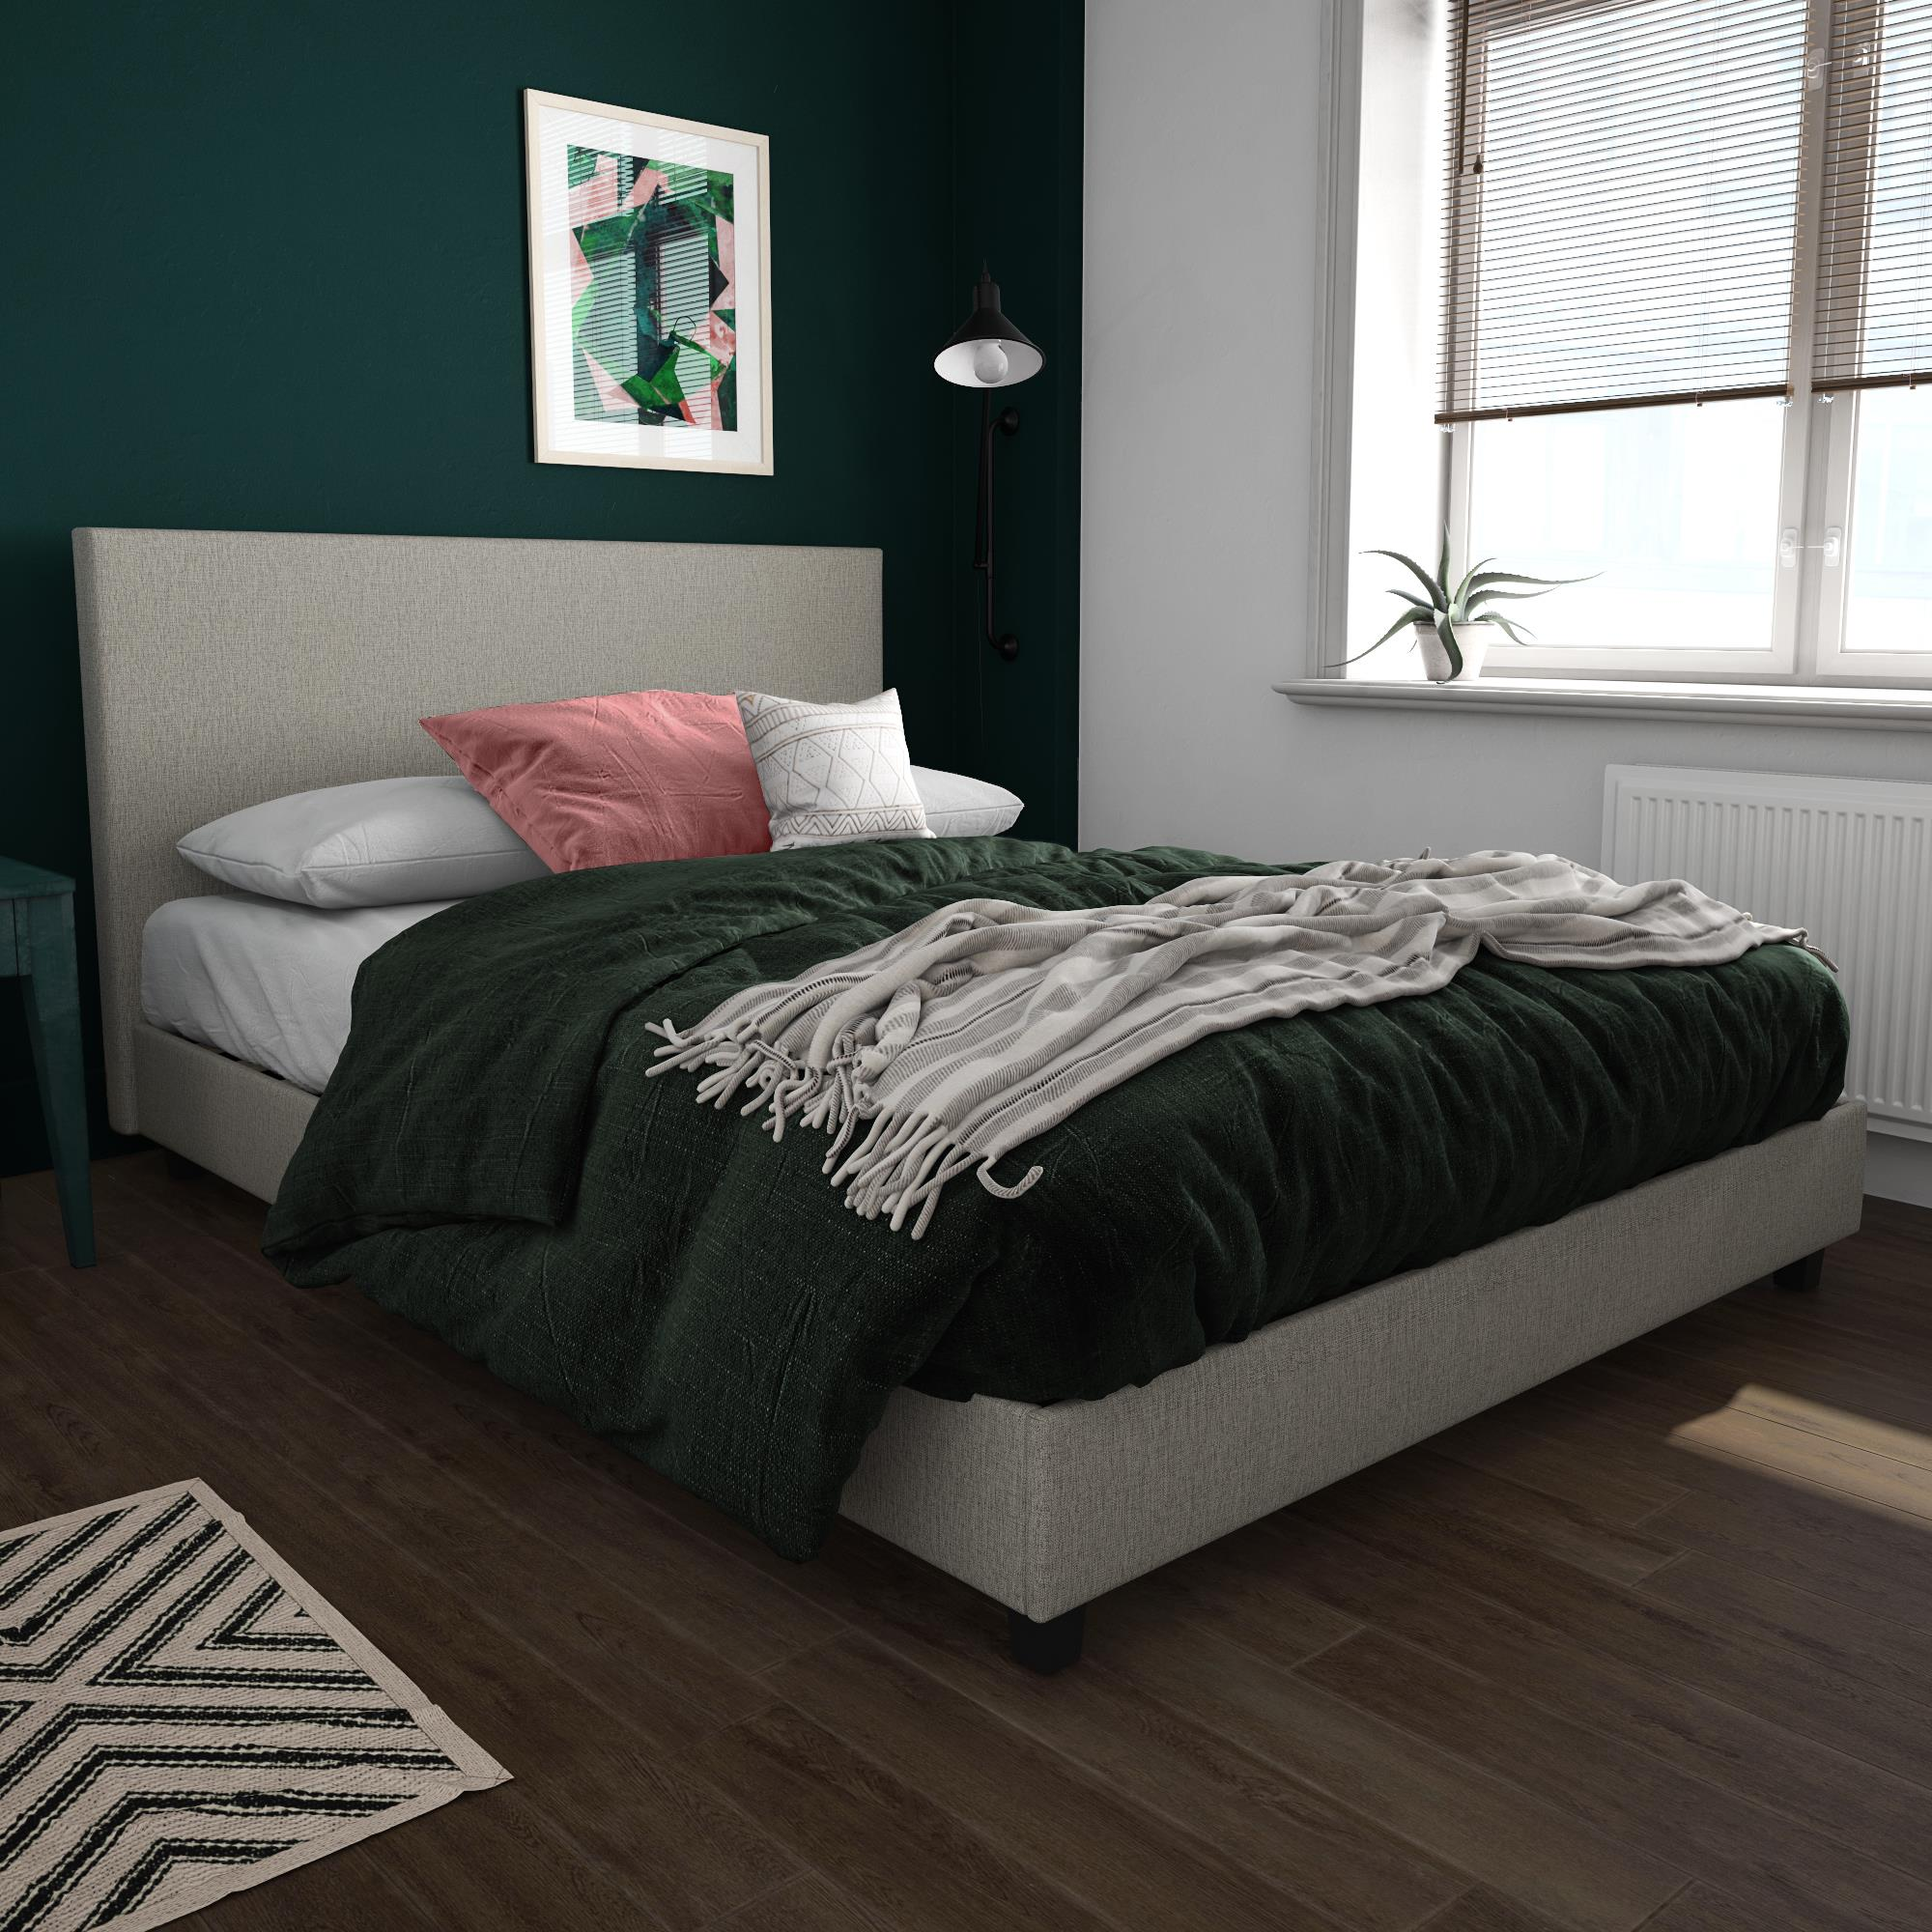 Mainstays Upholstered Bed, Multiple Sizes and Colors